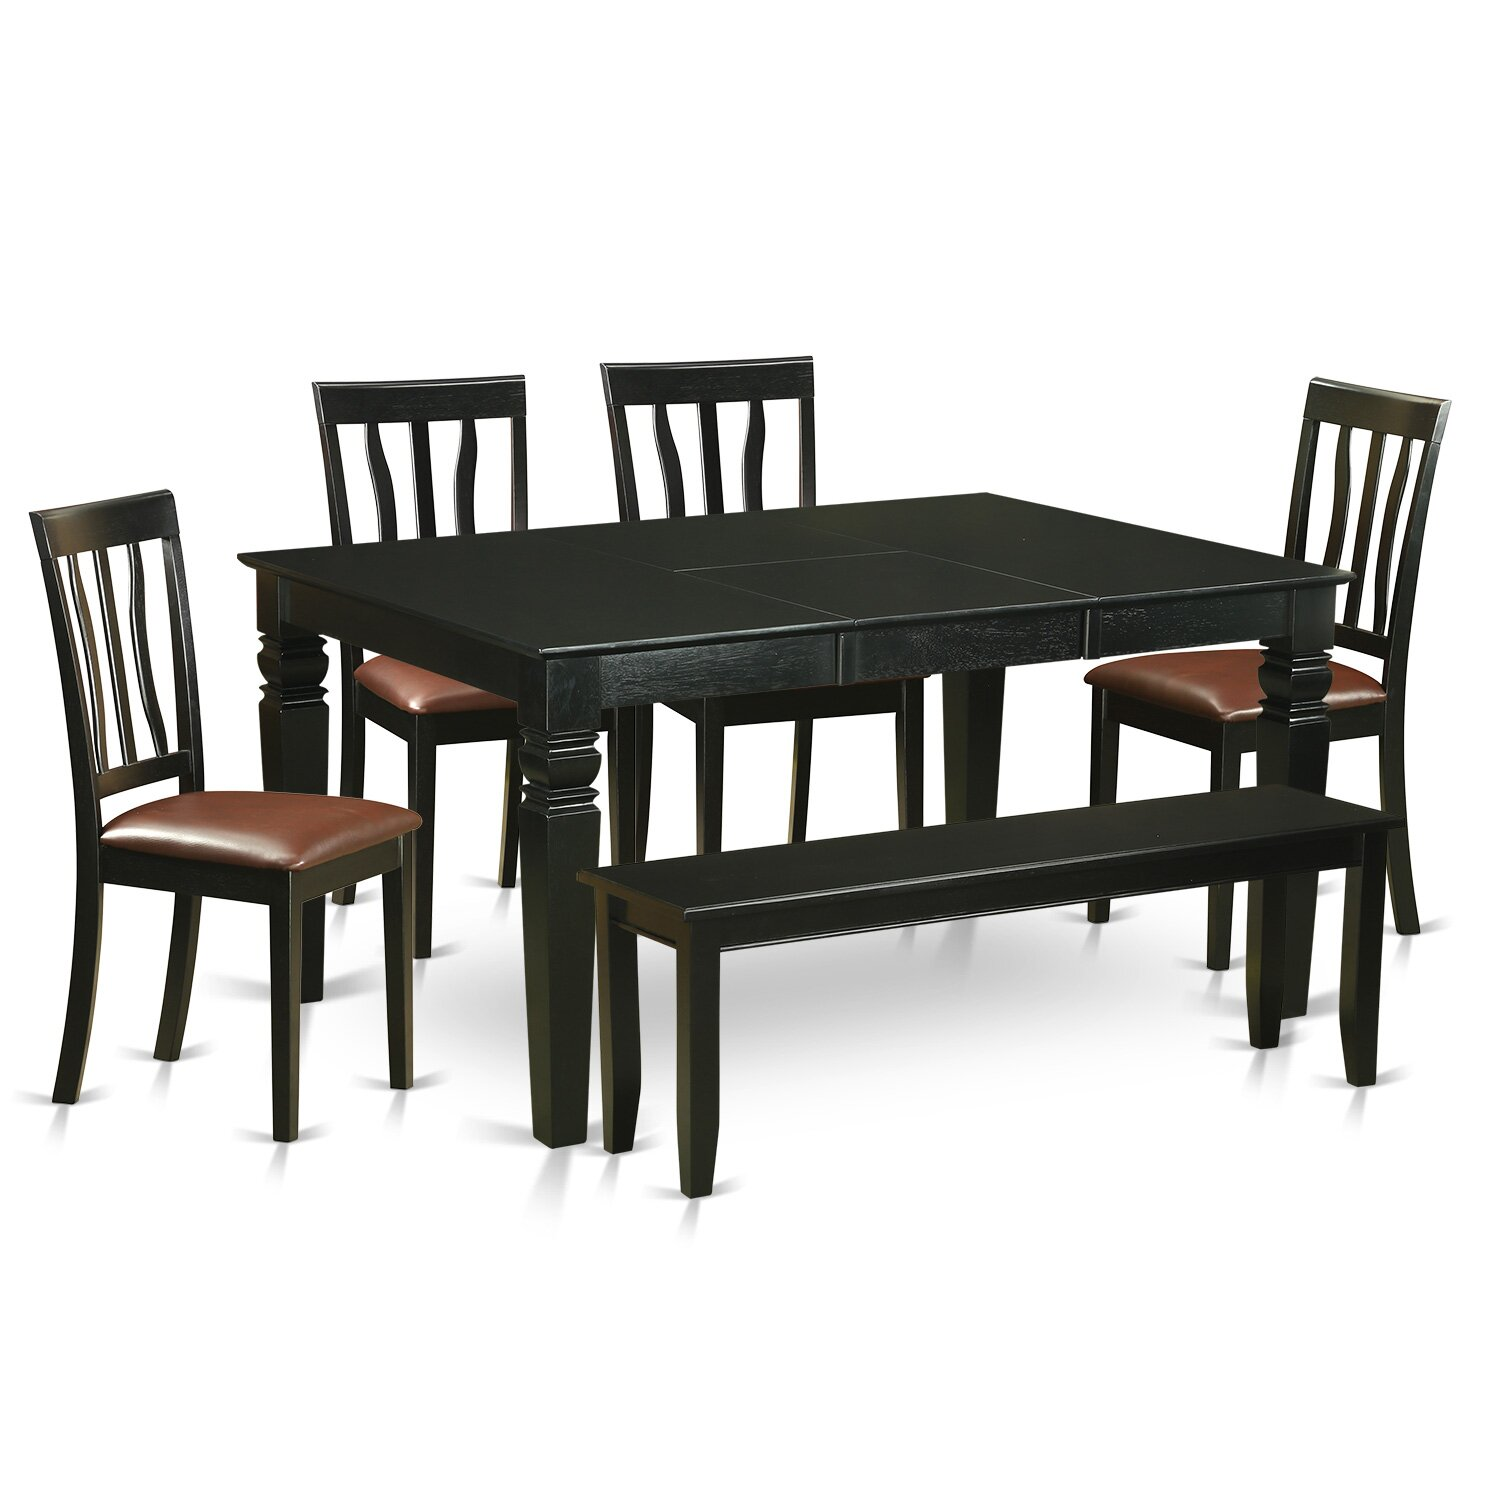 Wooden importers weston 6 piece dining set wayfair for Dining room sets for 6